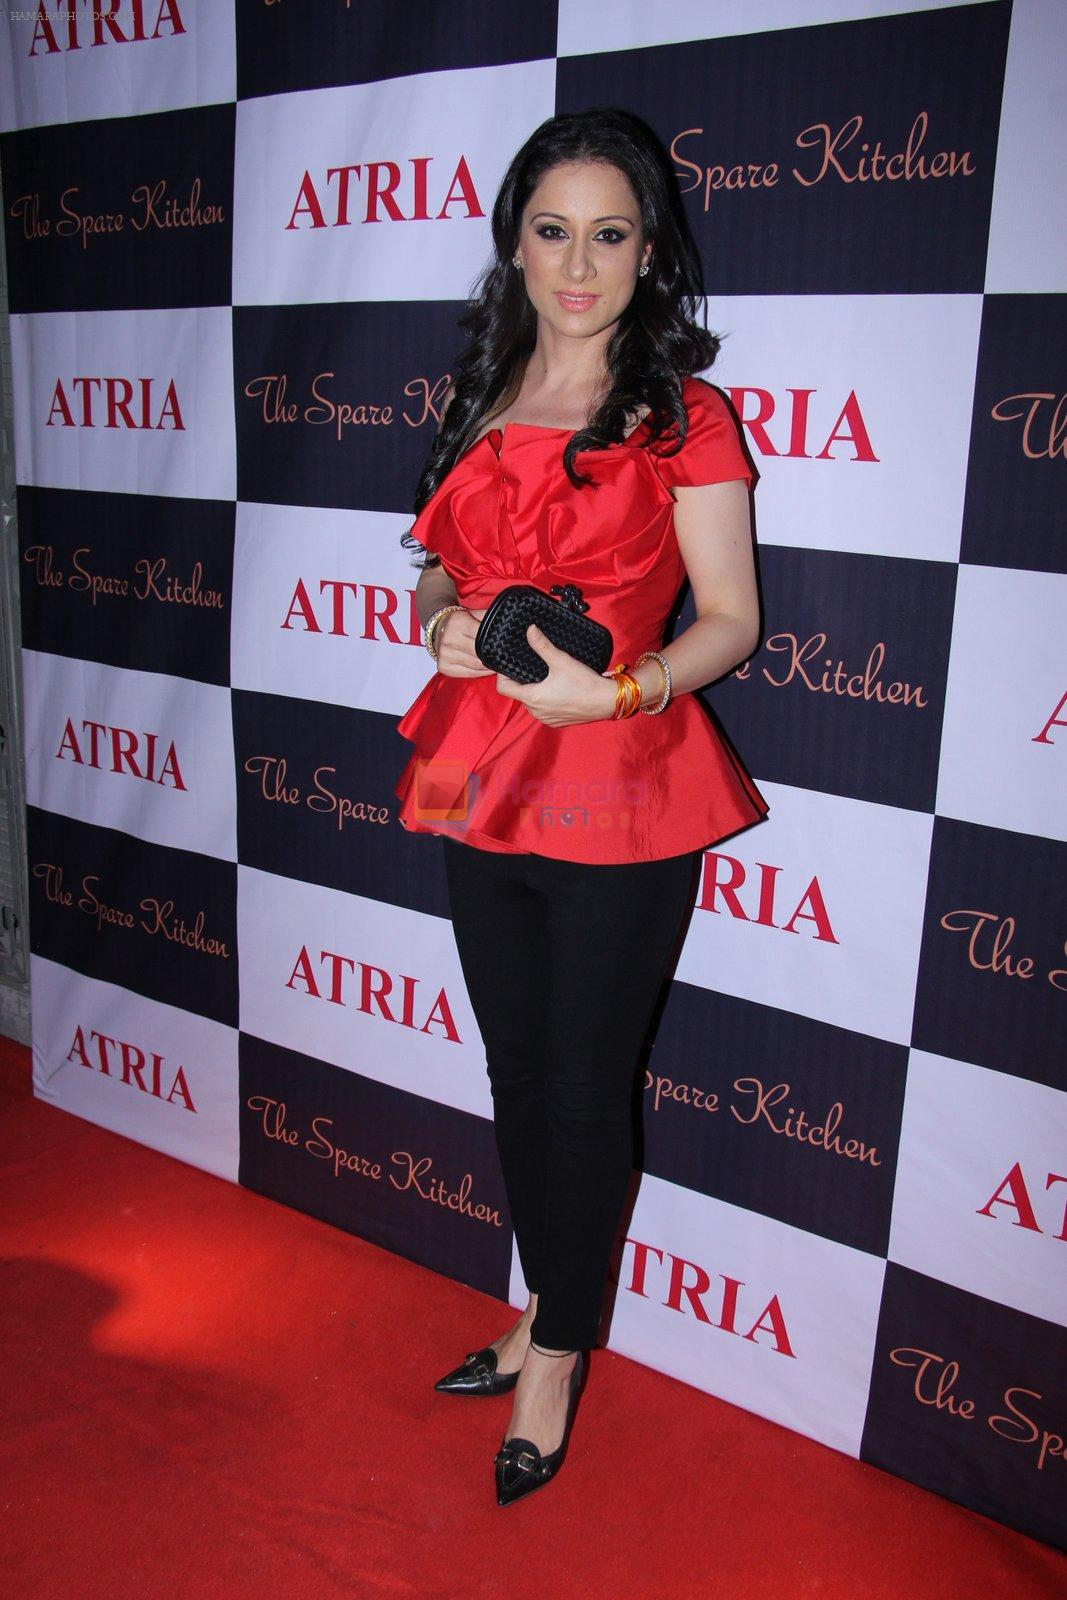 Rouble Nagi at Ritika and Kunal Vardhan's Spare Kitchen launch in Atria Mall on 25th nov 2016